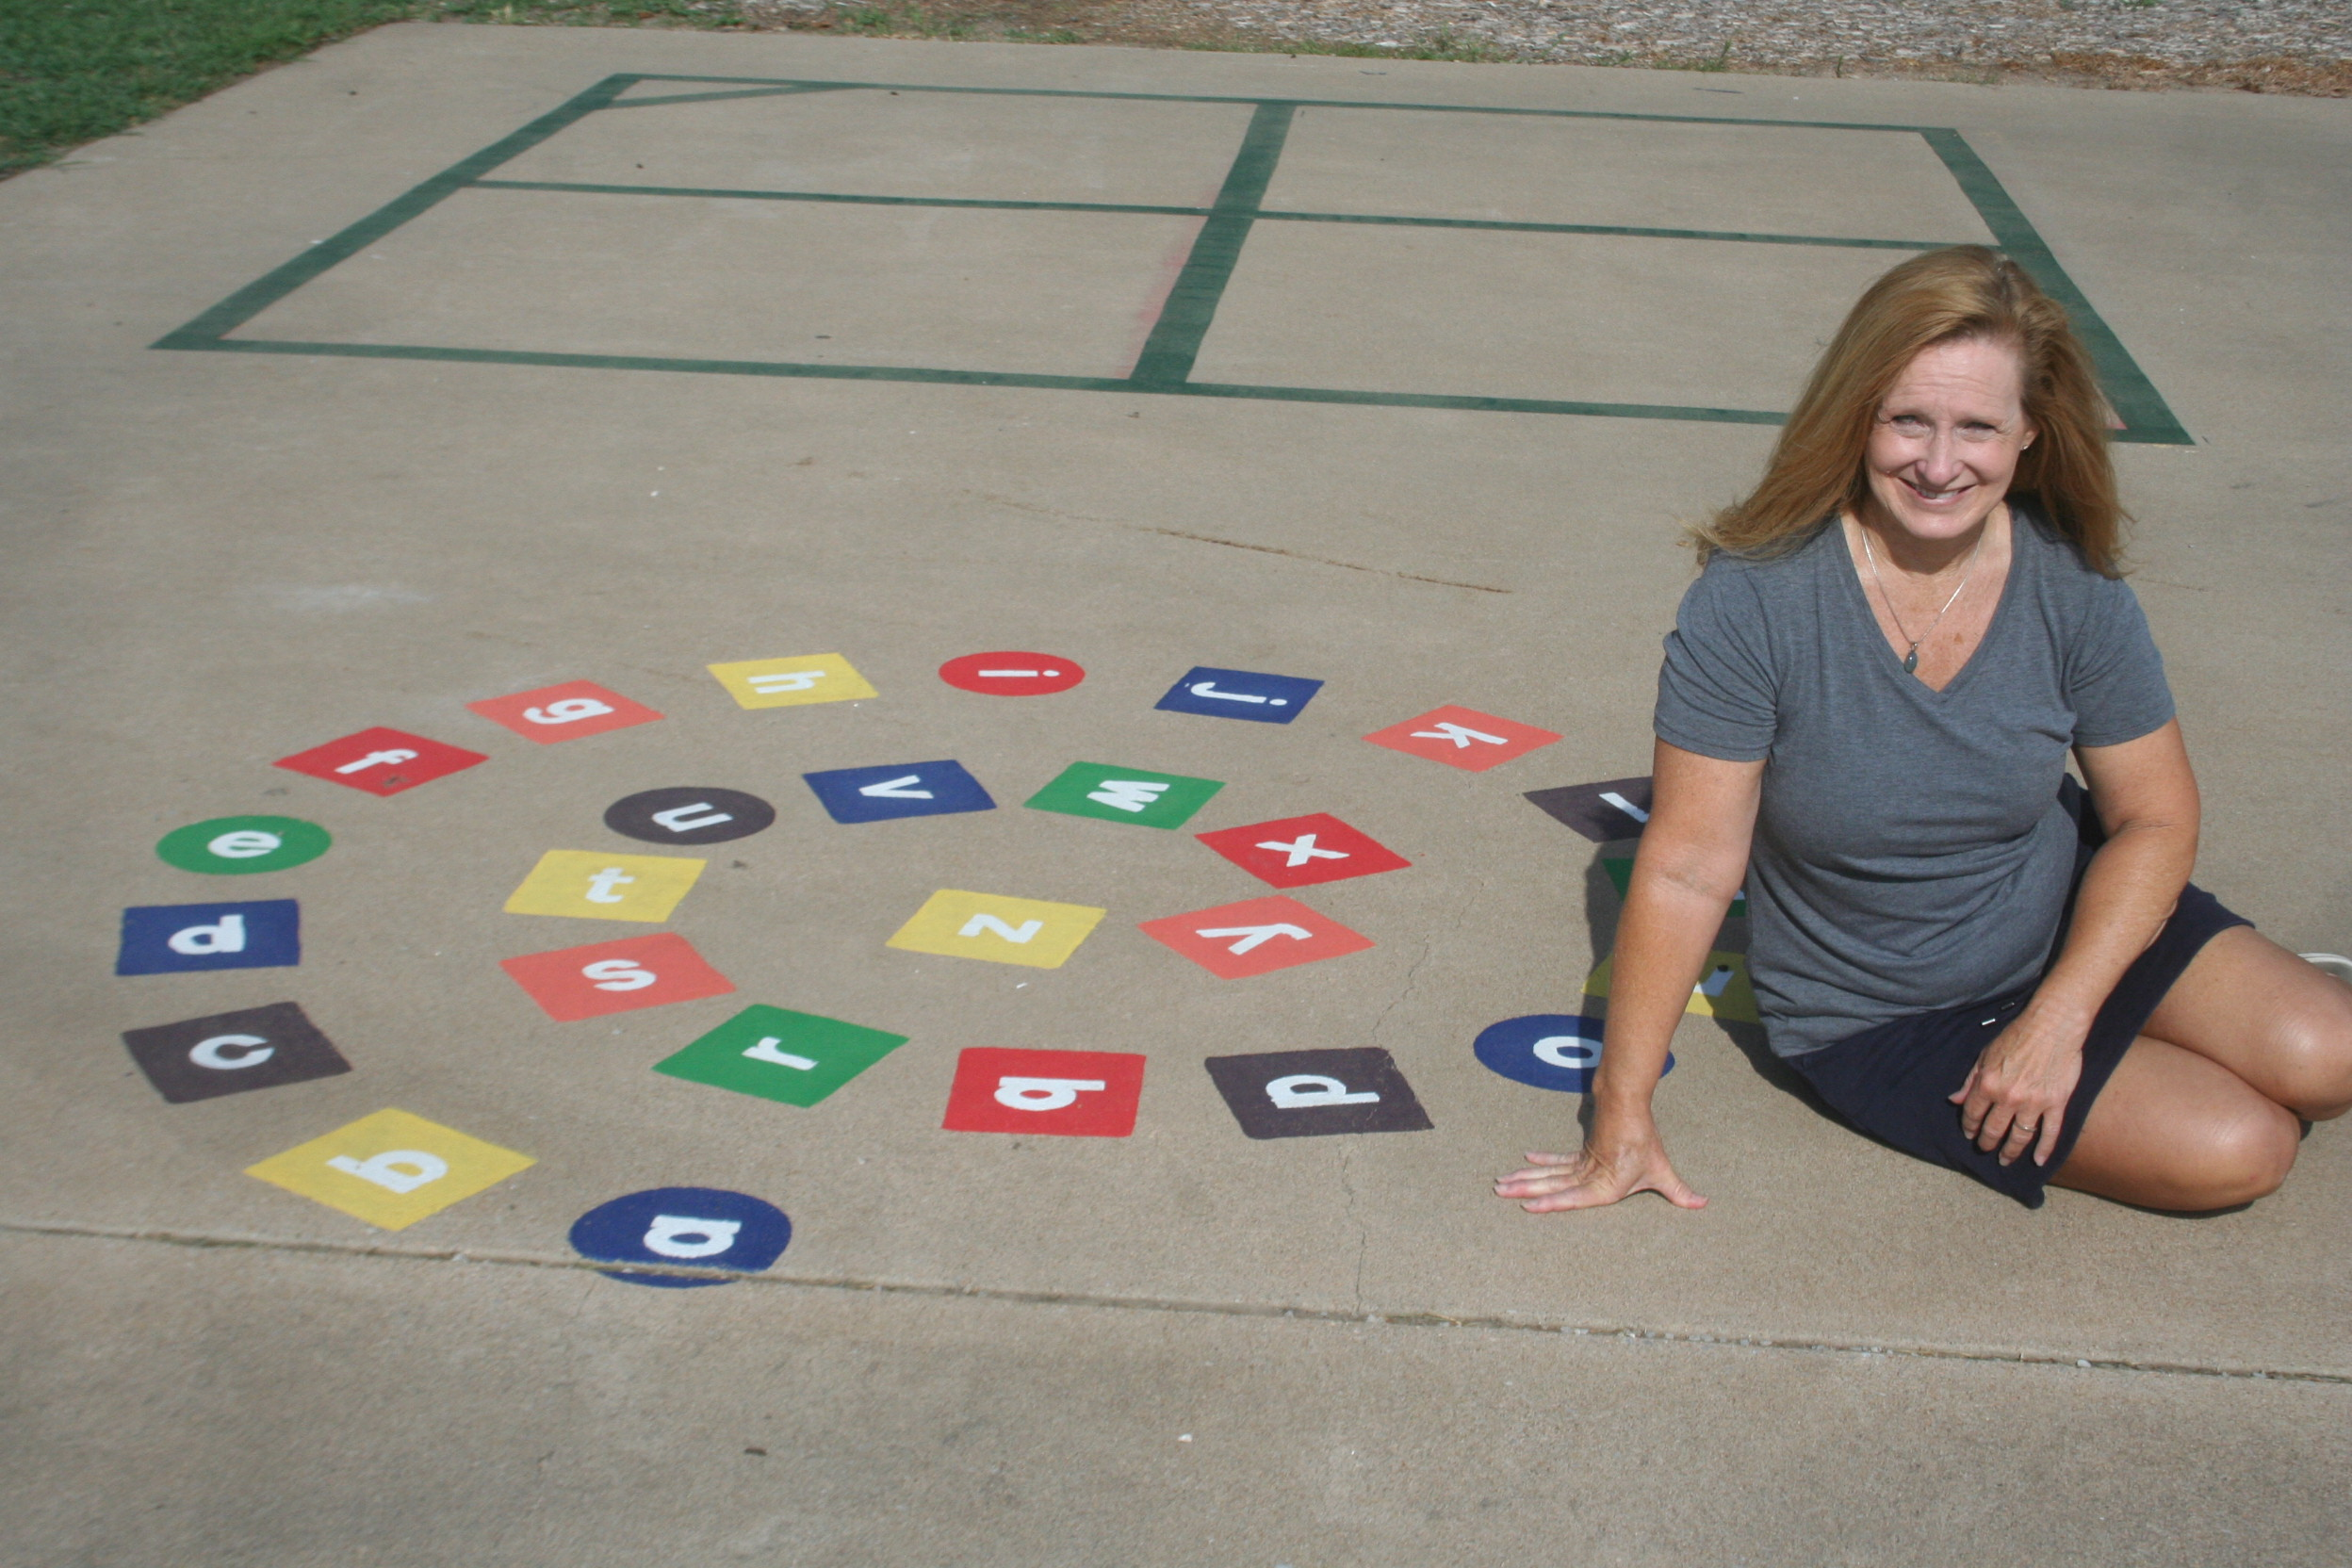 Game Time: Sedgwick teacher brightens playground with new recess opportunities